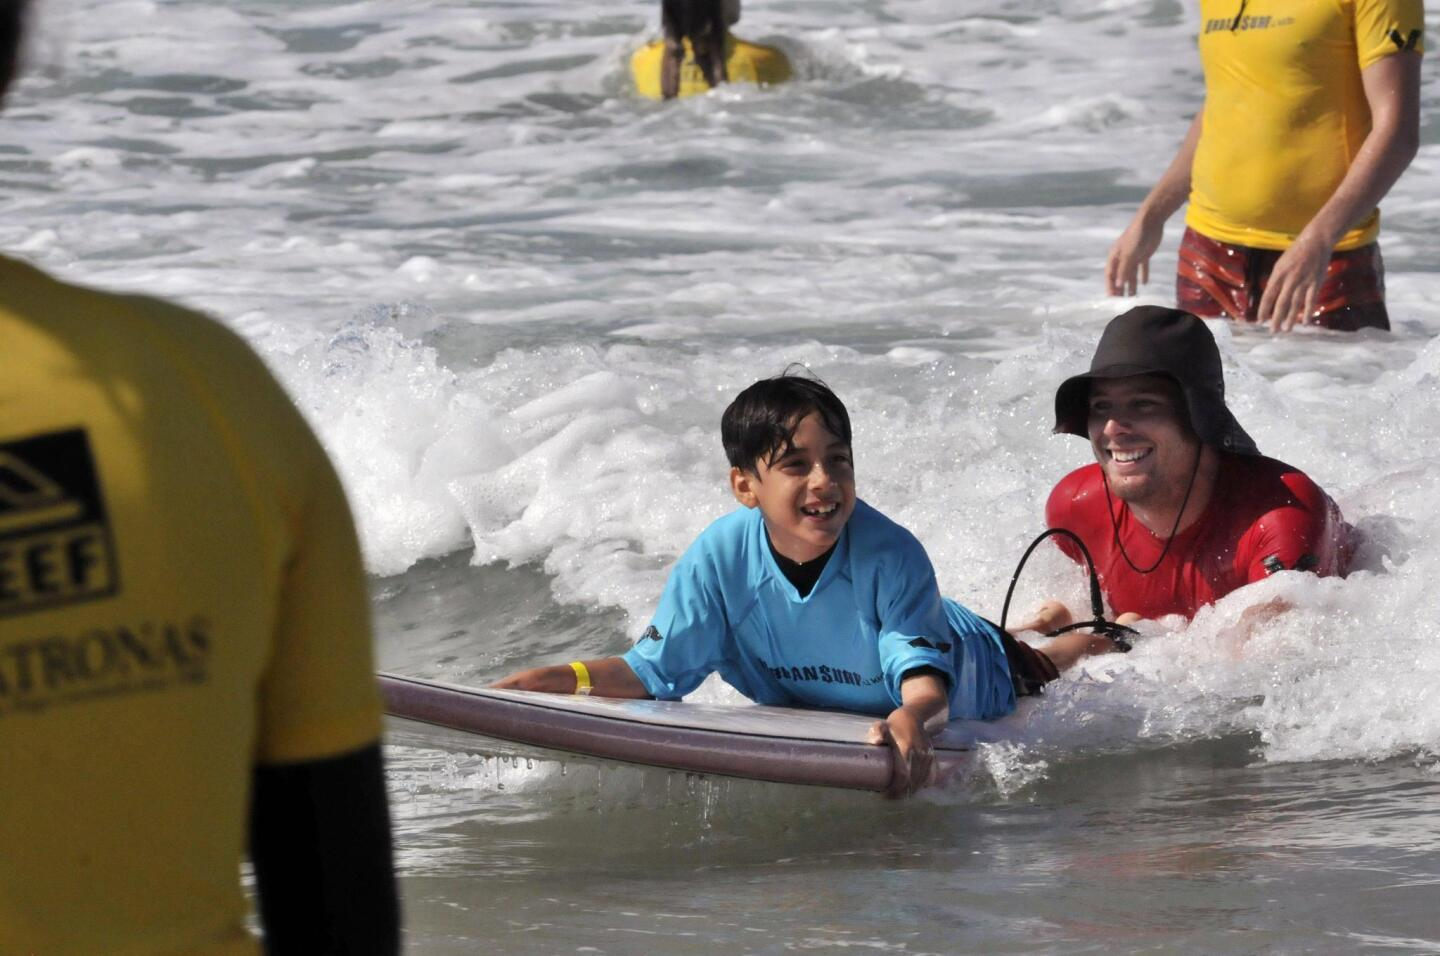 22nd Annual Blind Surfing Event